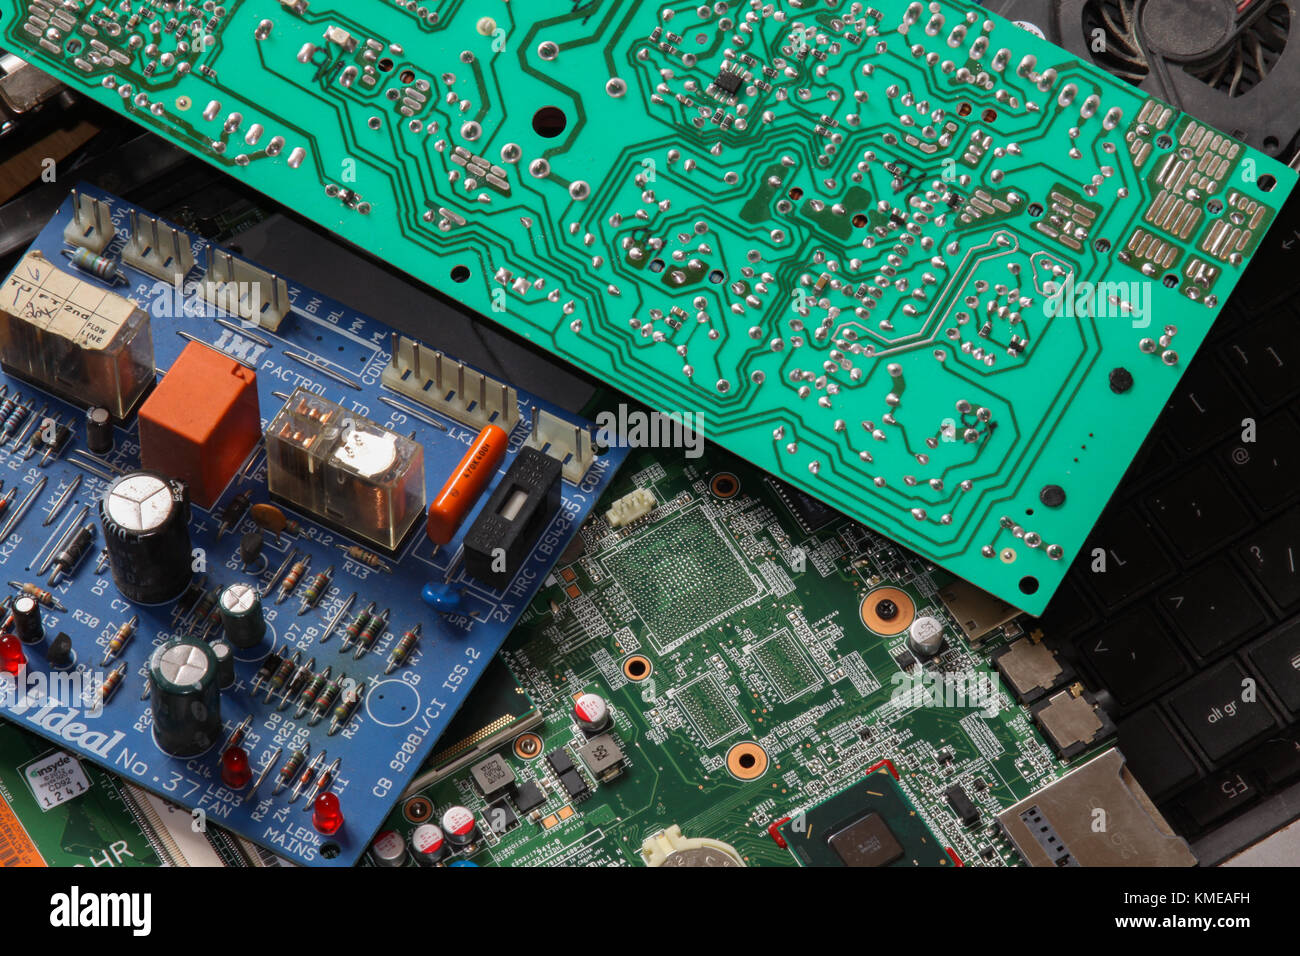 Circuit Board Parts Recycling Salvage From Rear Circuitboardclockjpg Computer Recycle Stock Photos